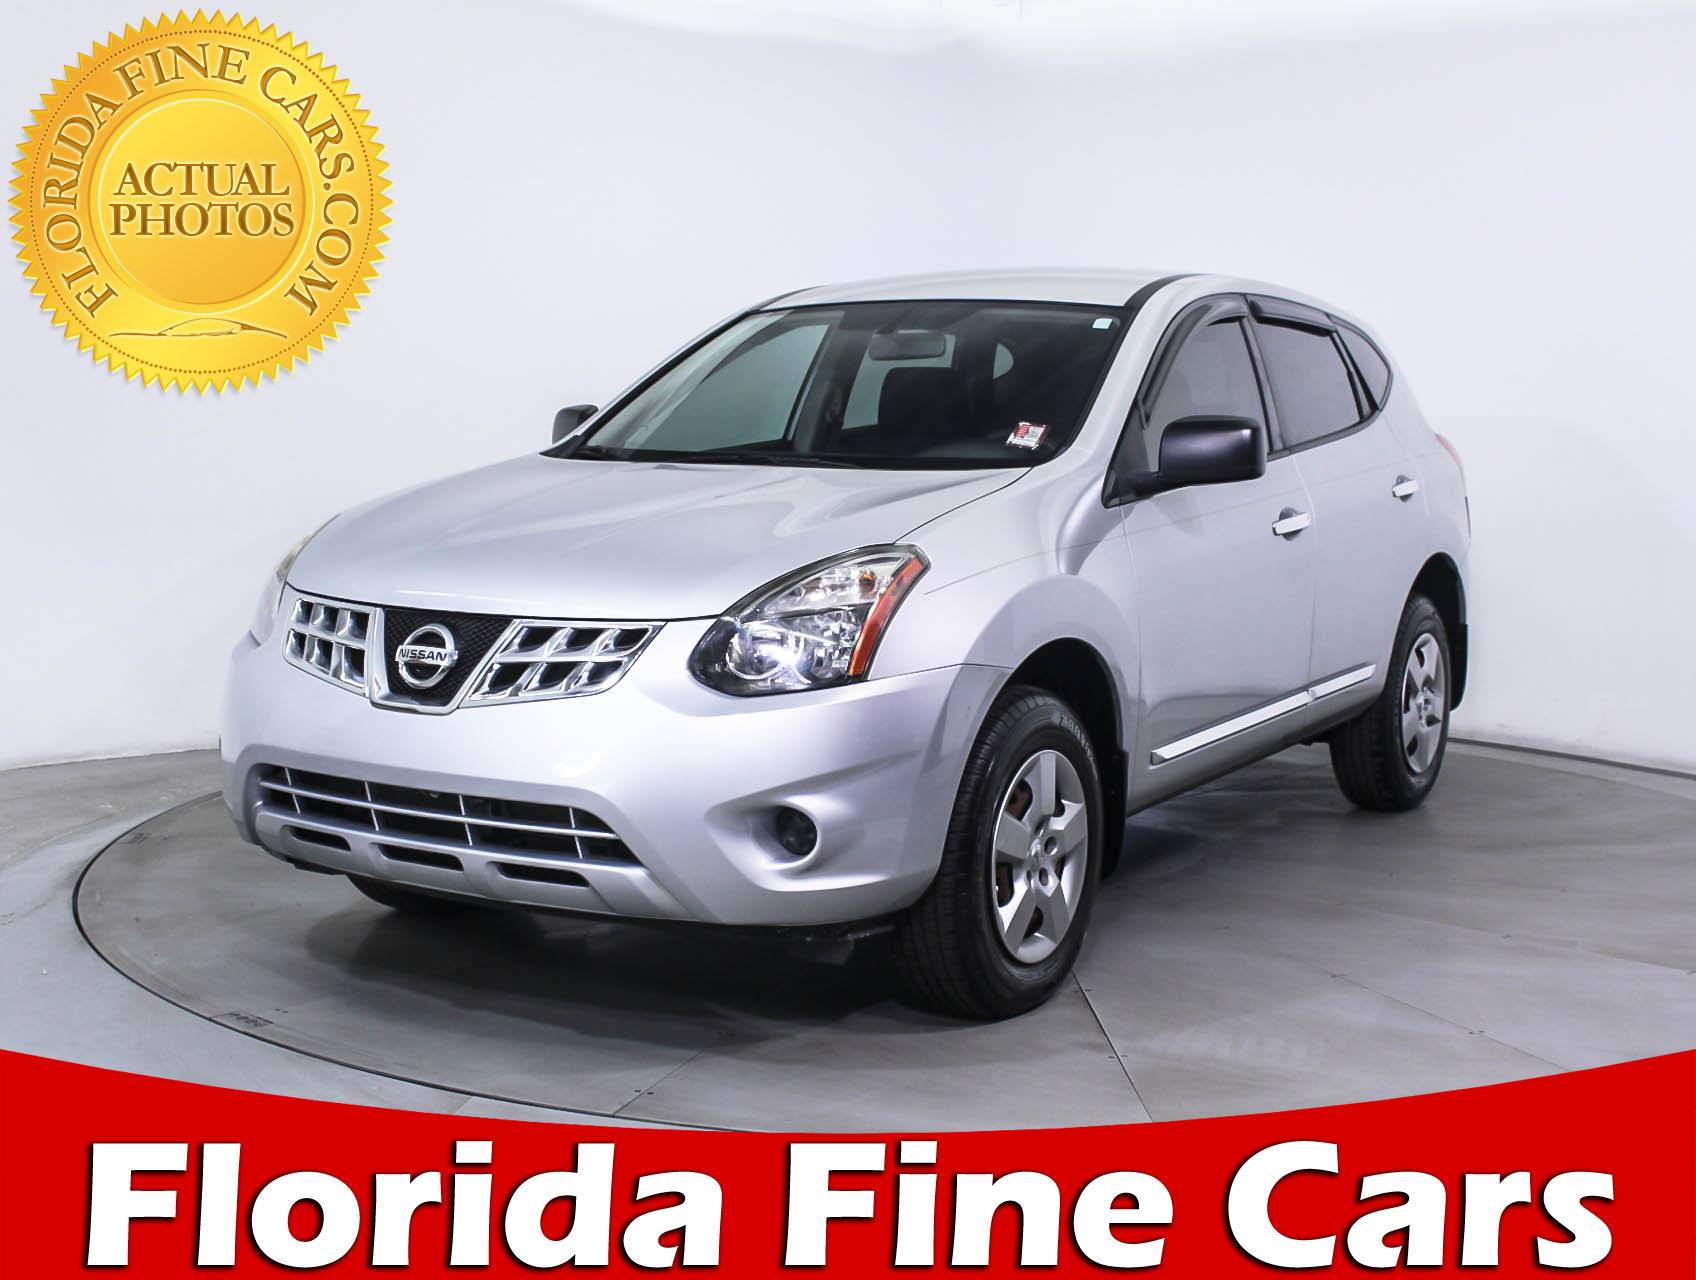 Used 2014 NISSAN ROGUE SELECT S SUV for sale in MARGATE FL